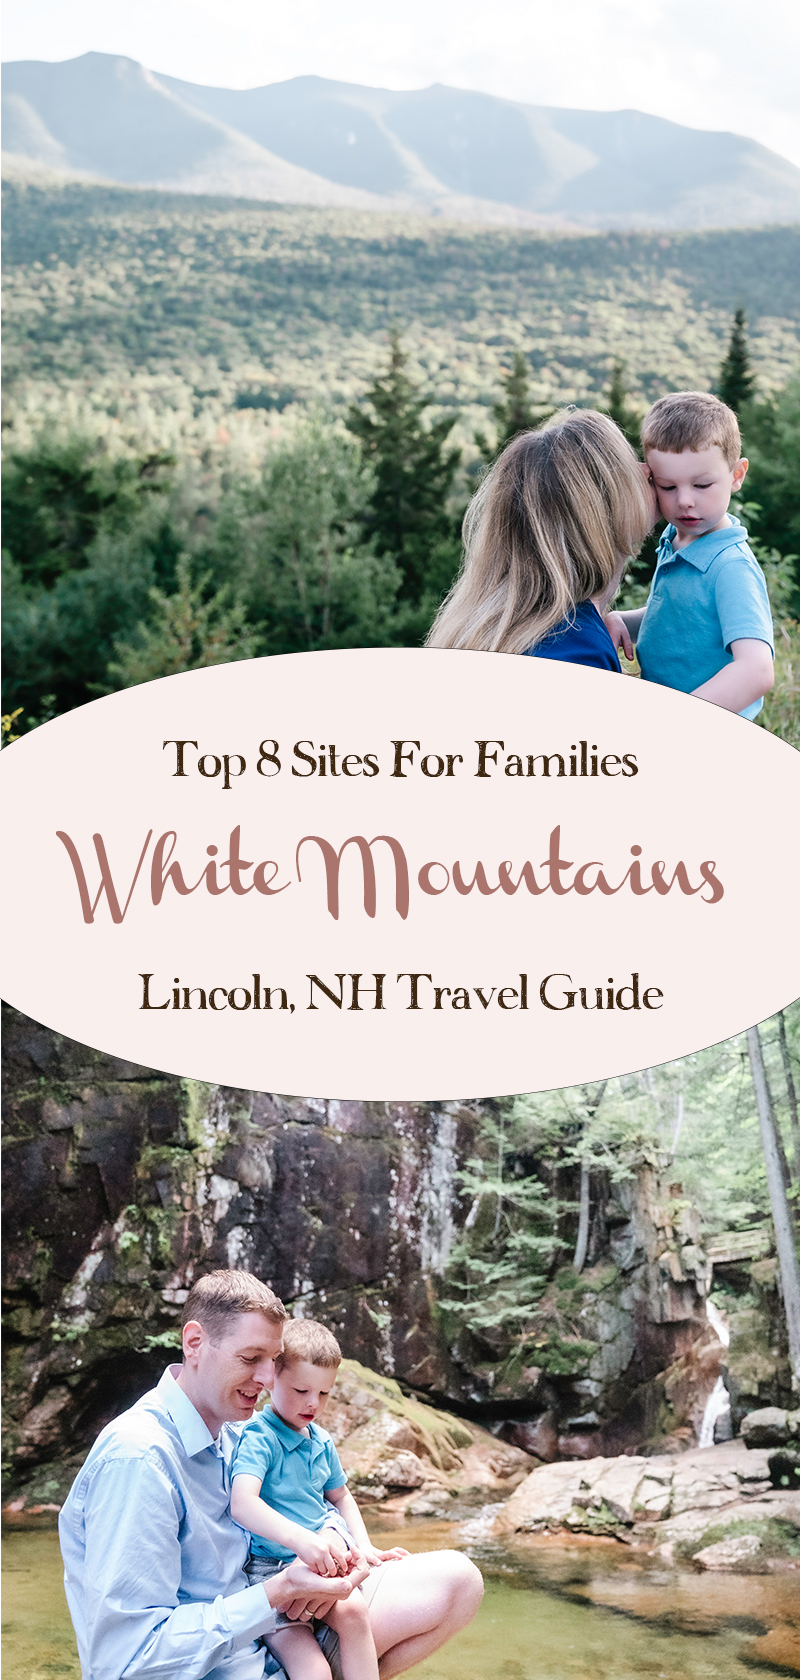 Top-8-Sites-For-Families-White-Mountains-Bucket-List-Lincoln-New-Hampshire-Travel-Guide